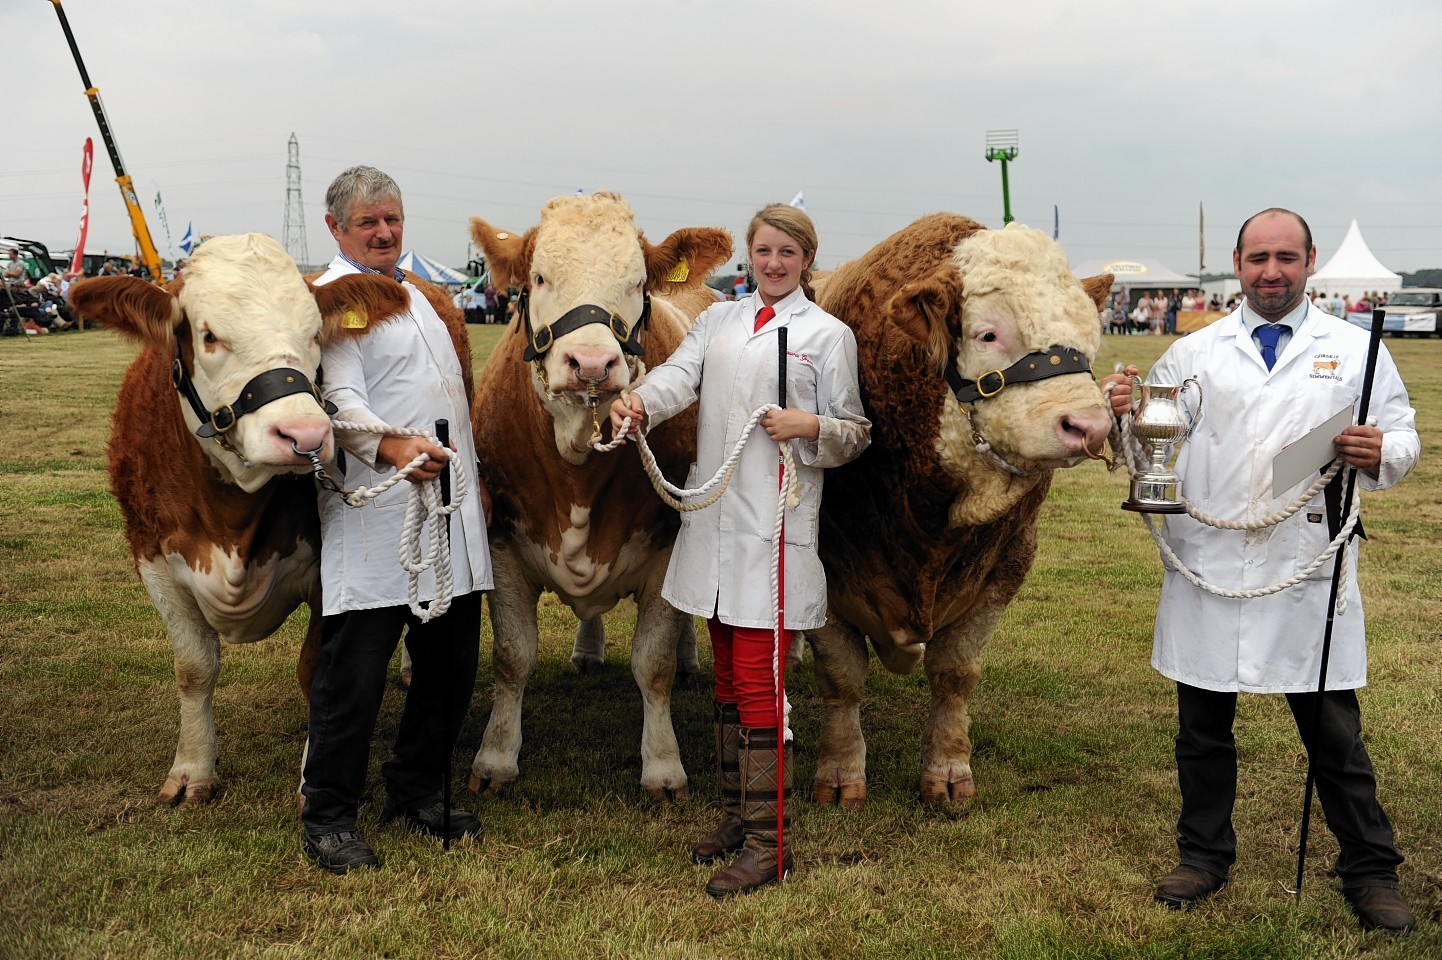 The Nairn Show